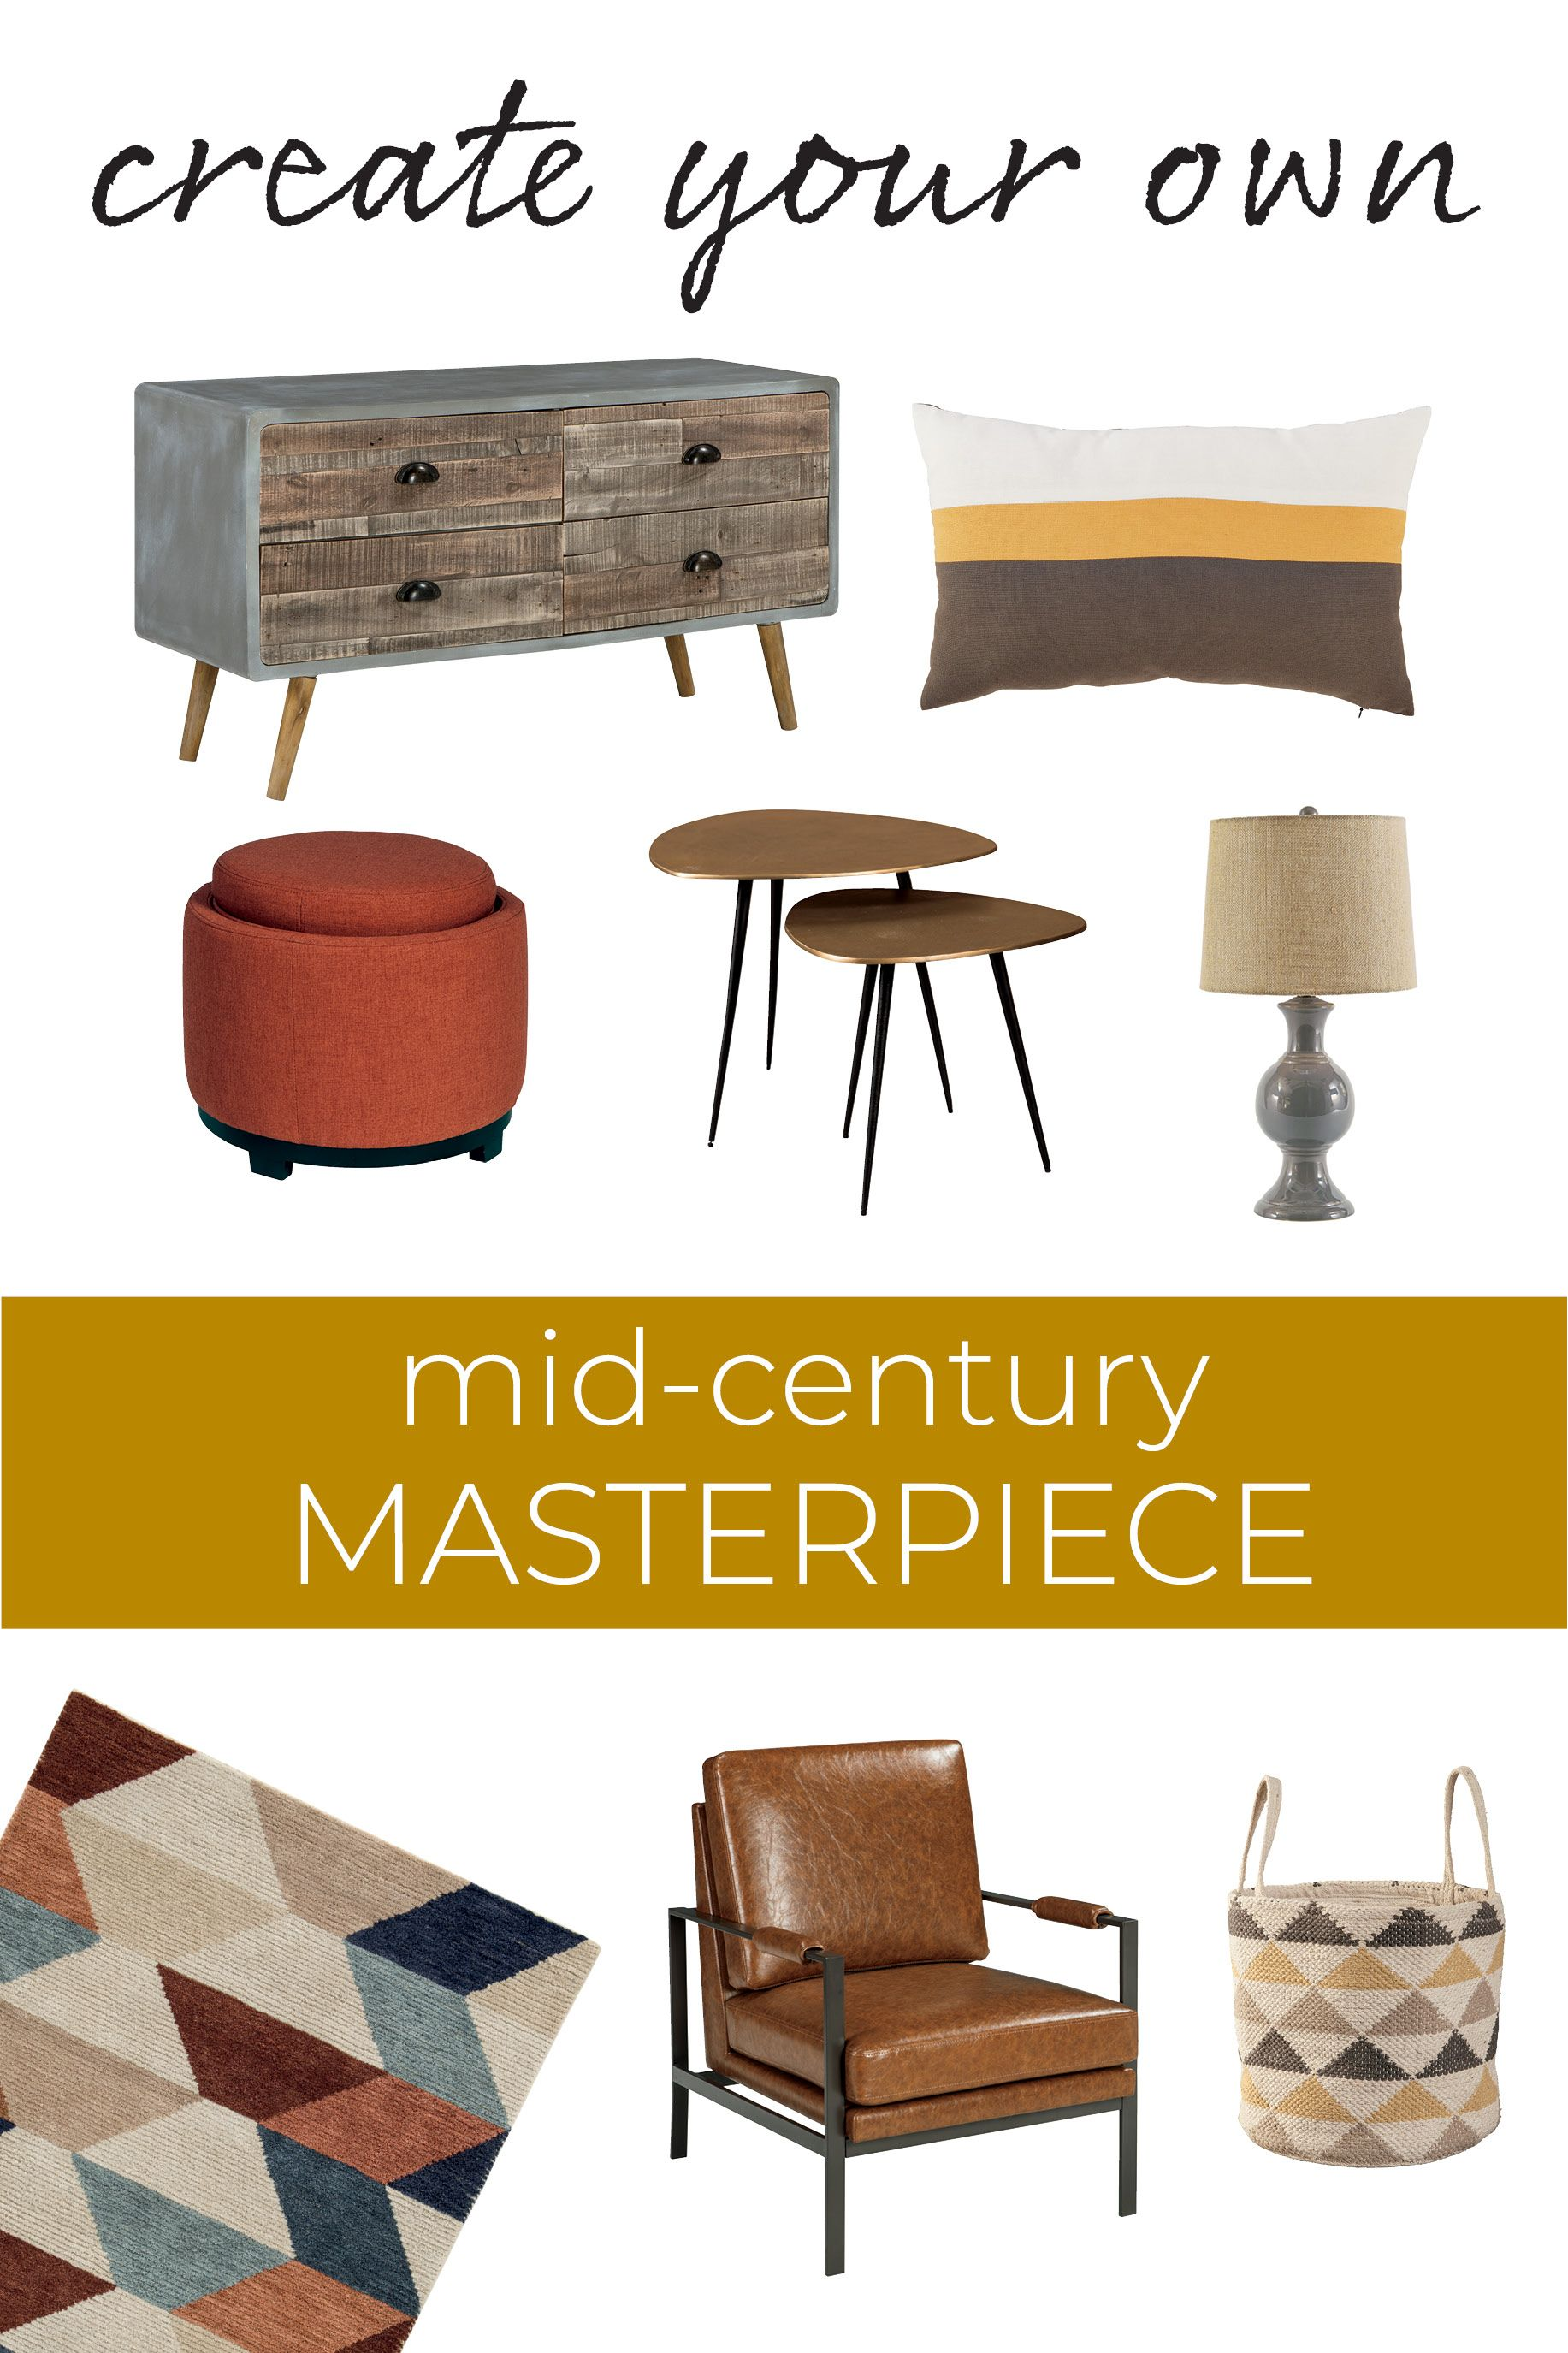 Mid Century Accents And Accessories From Ashley Furniture Ashleyfurniture Mid Century Accents Ashley Furniture Ashley Furniture Industries